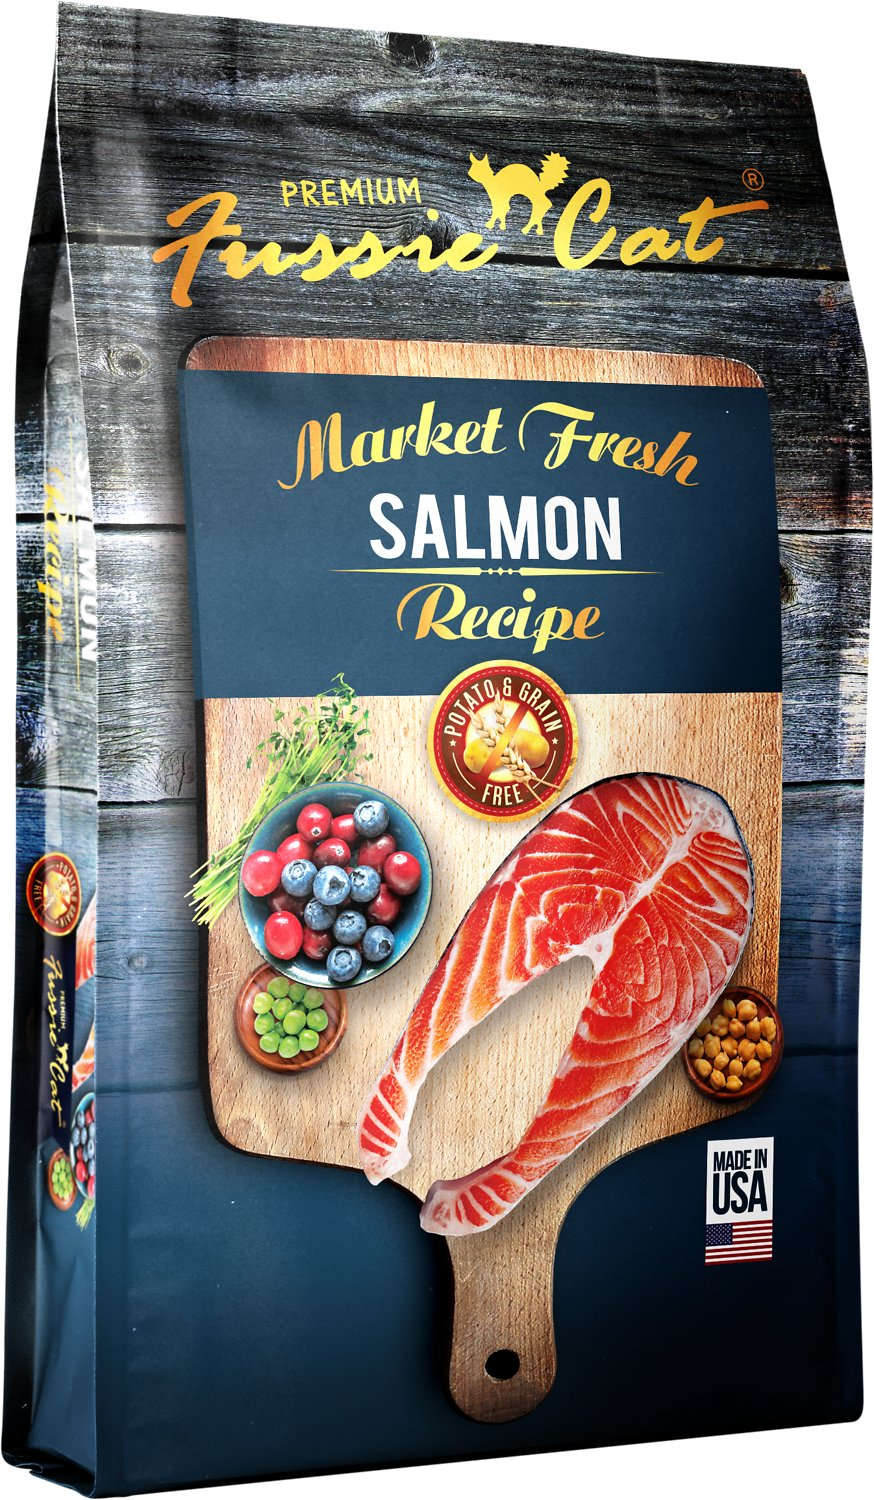 Market Fresh Salmon